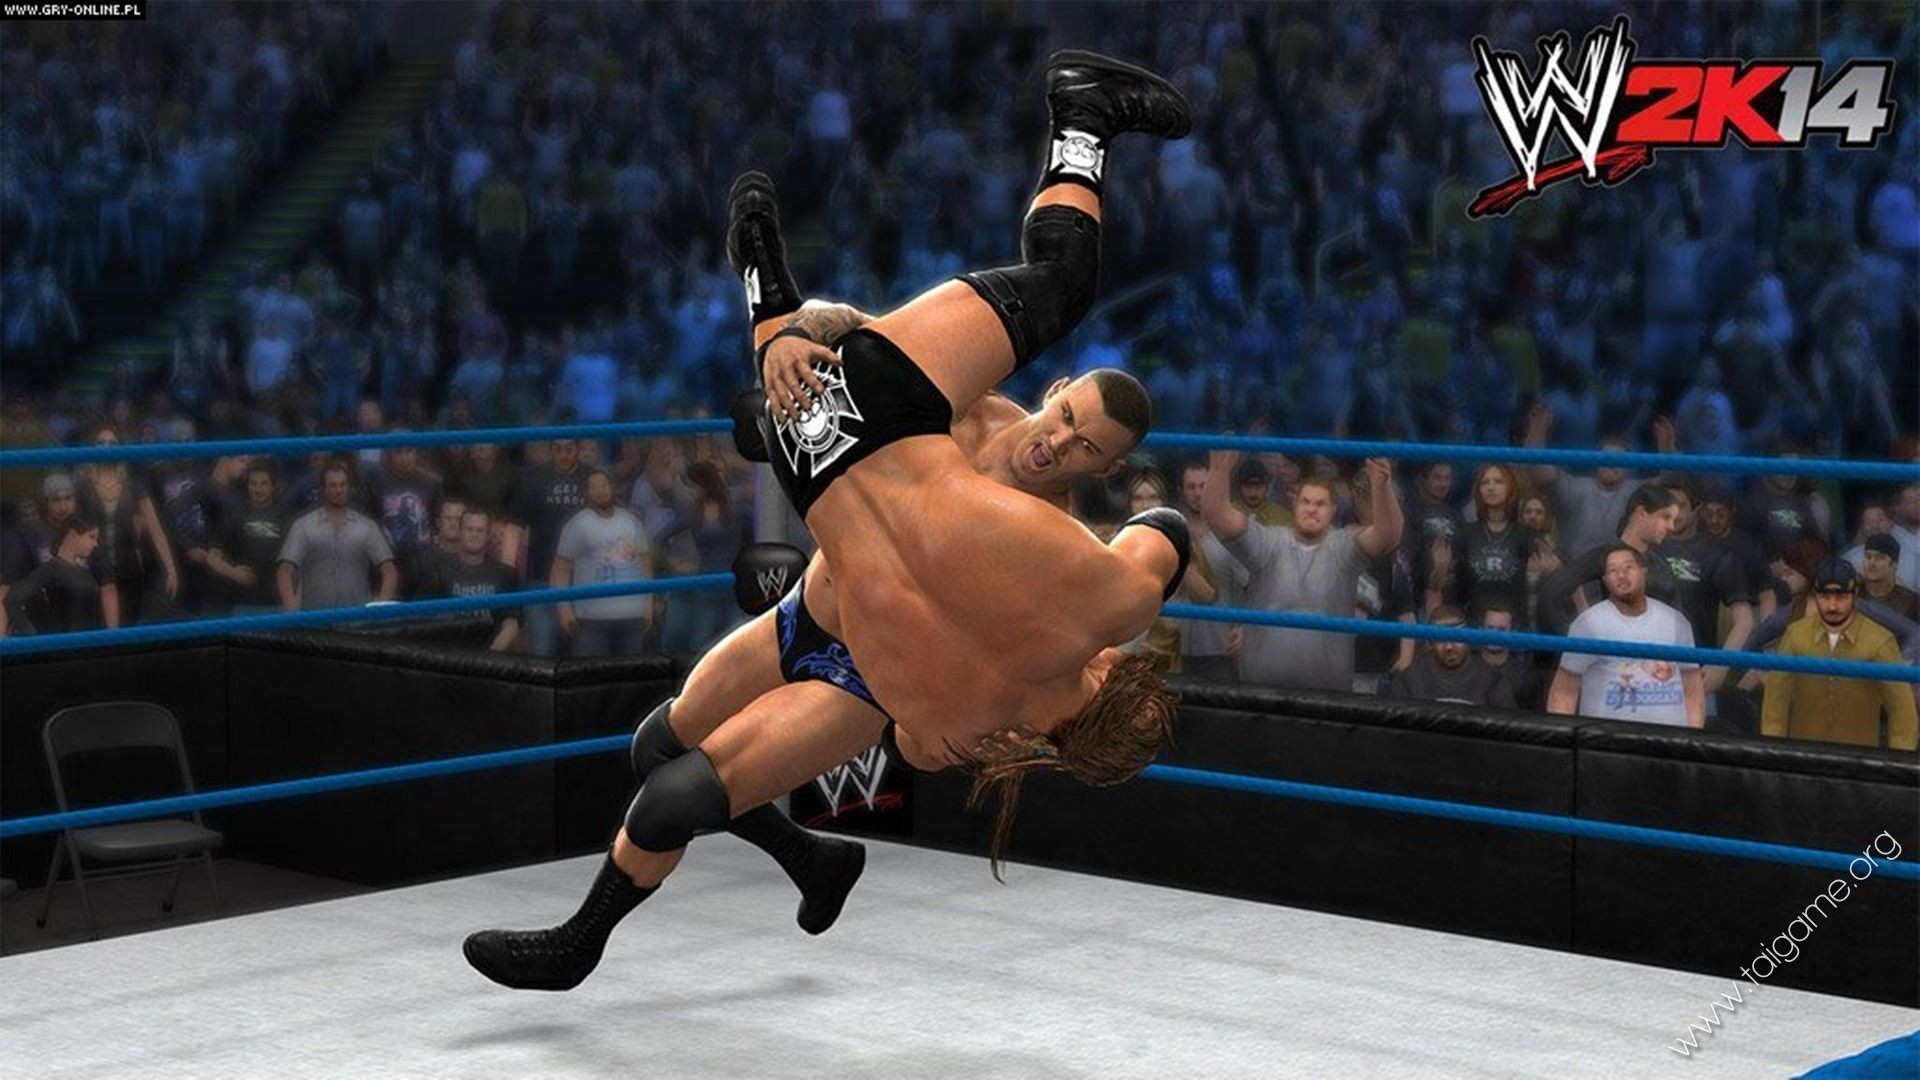 Play WWE Wrestling Games Online.